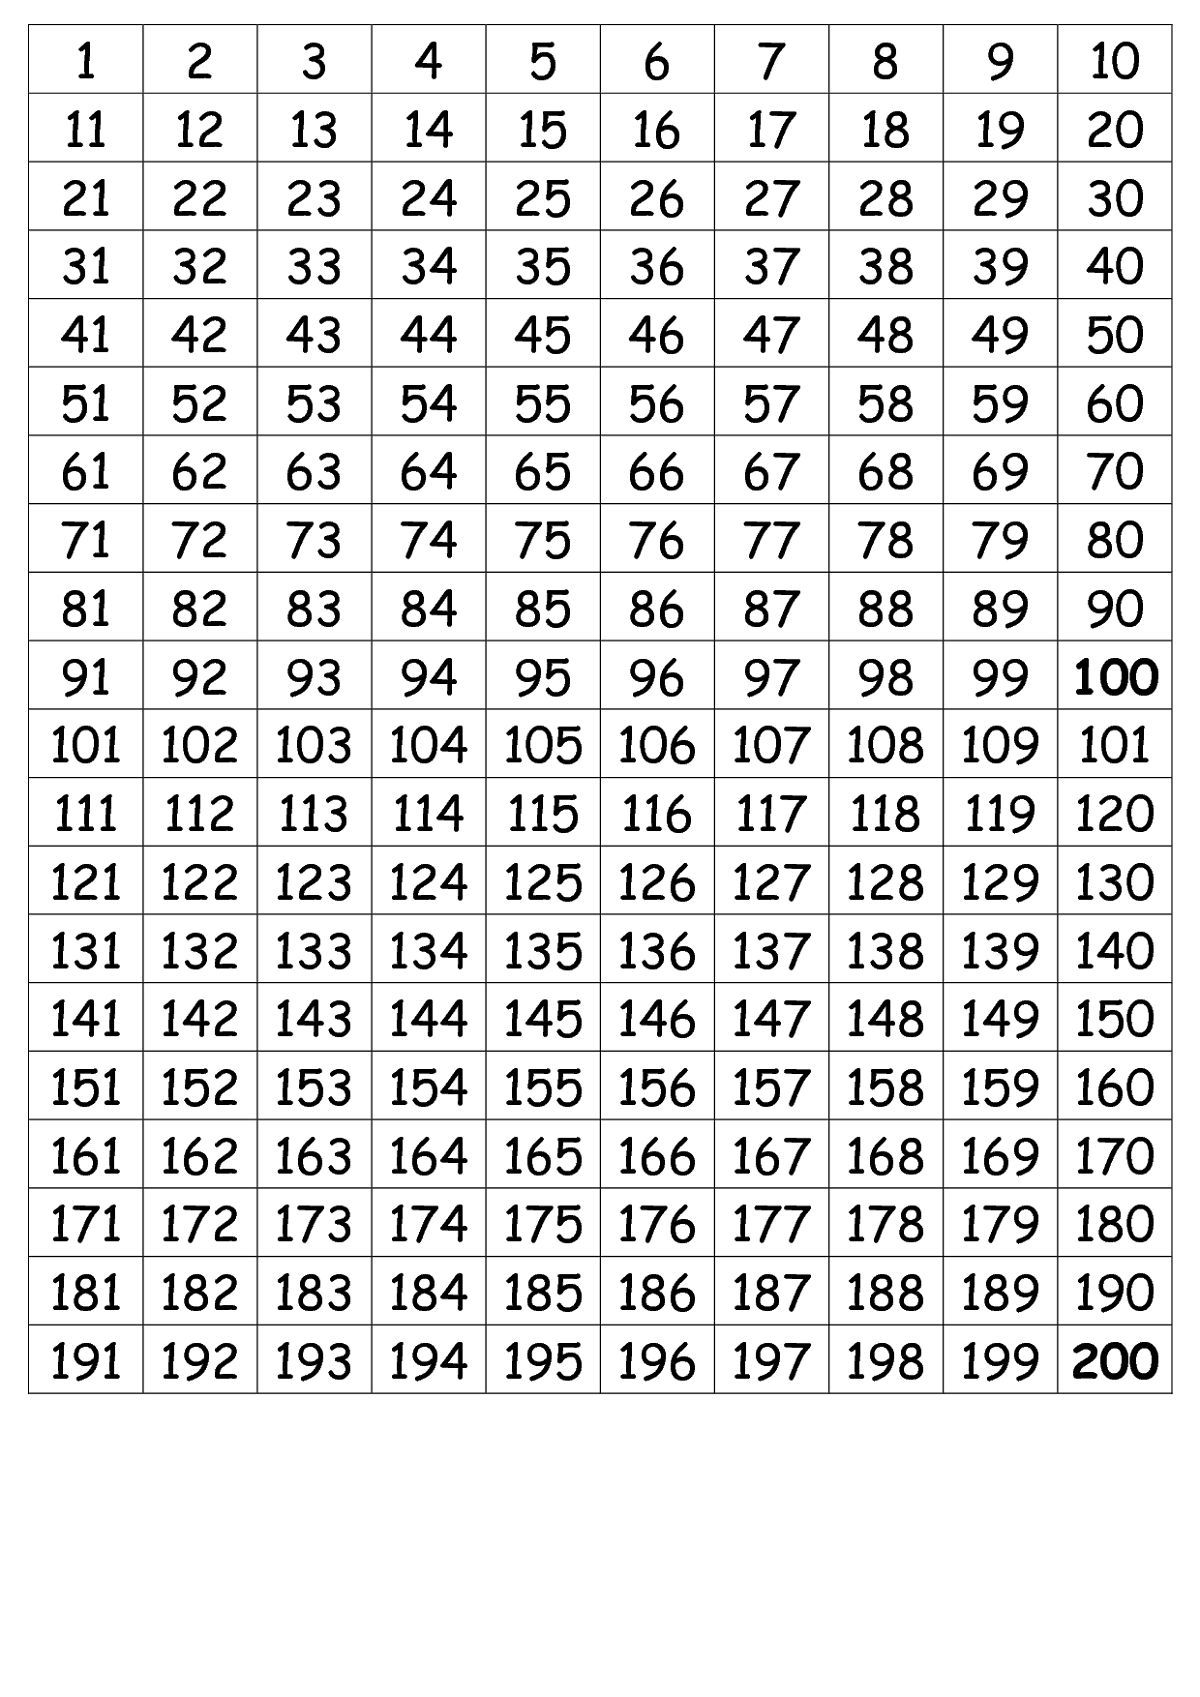 number-chart-1-200-simple